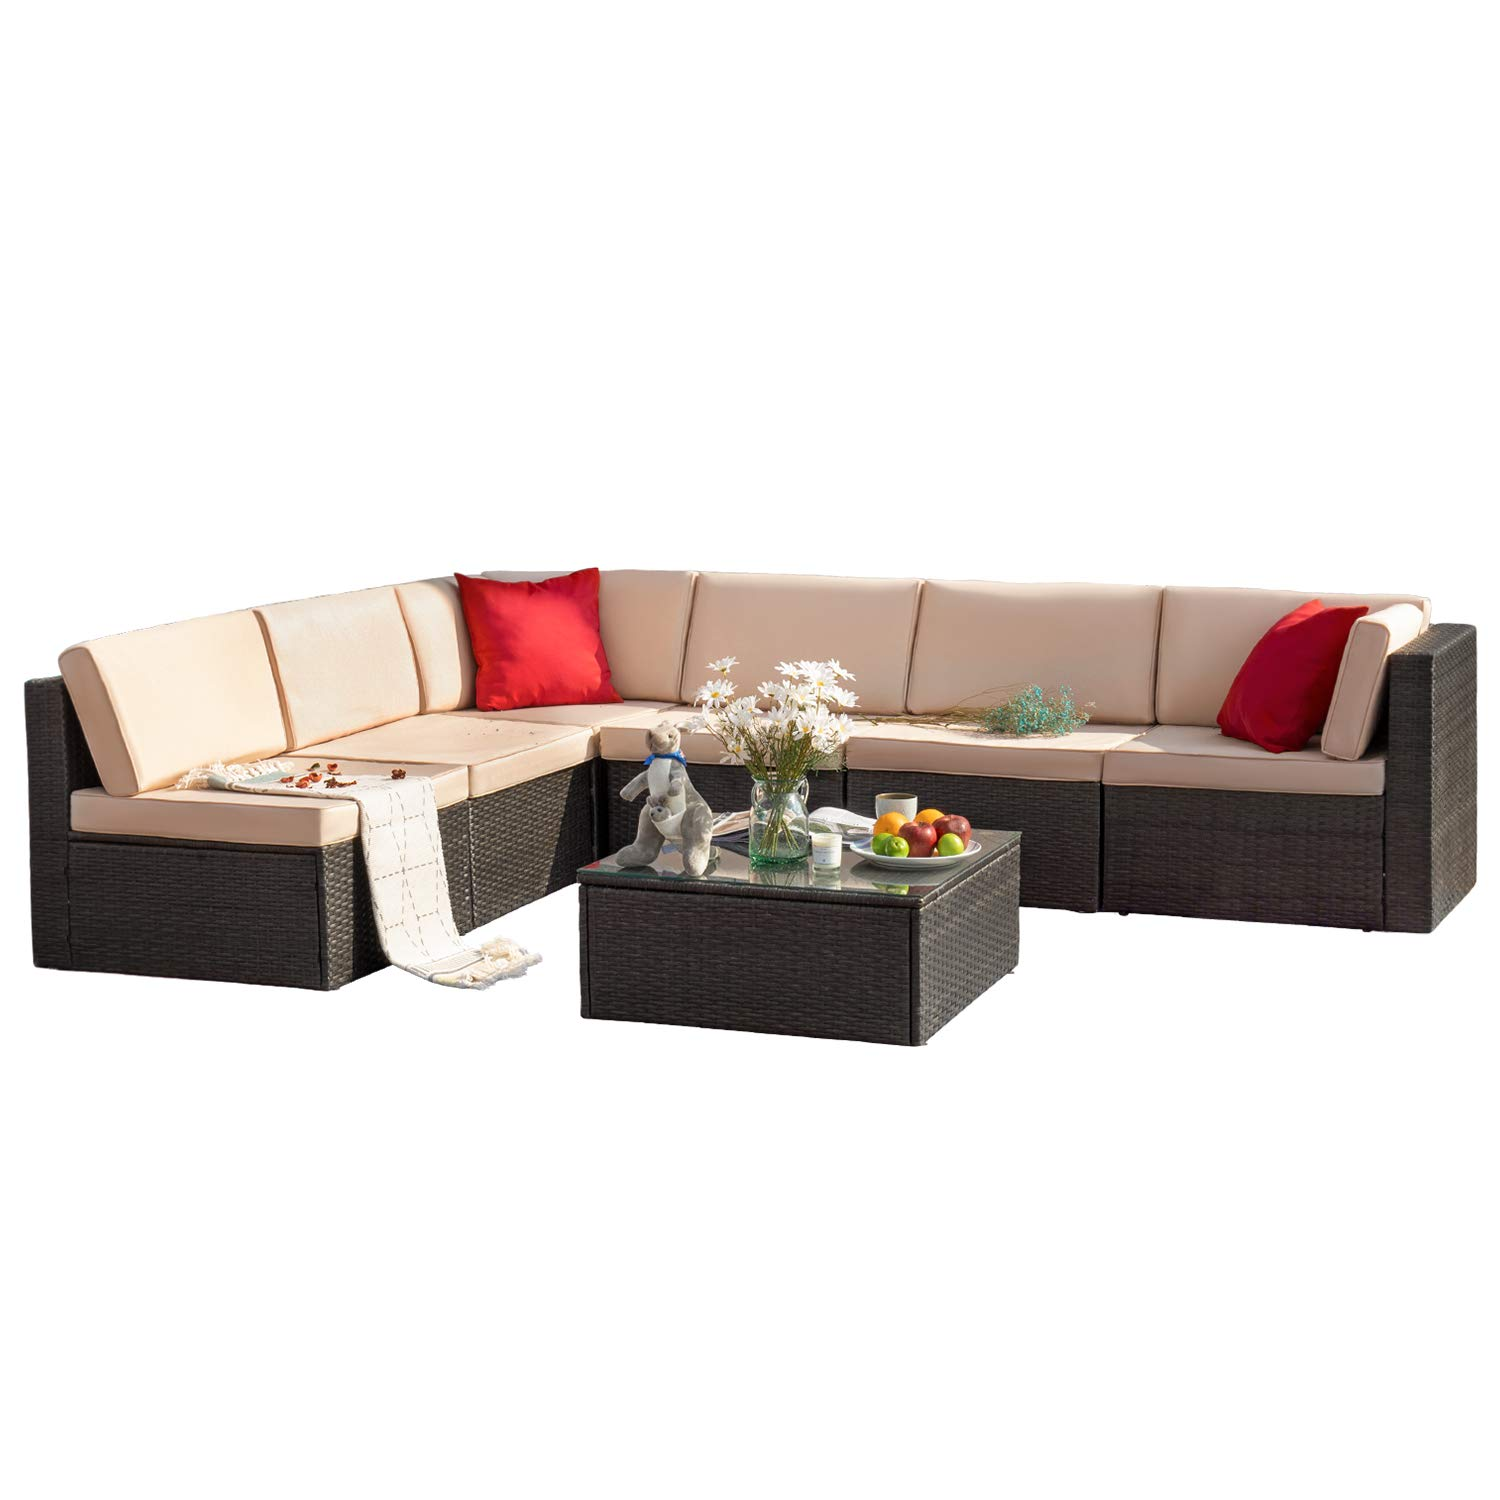 Tuoze 7 Pieces Patio Furniture Sectional Outdoor All Weather PE Rattan Wicker Lawn Conversation Cushioned Sofa Set with Glass Coffee Table (Beige)